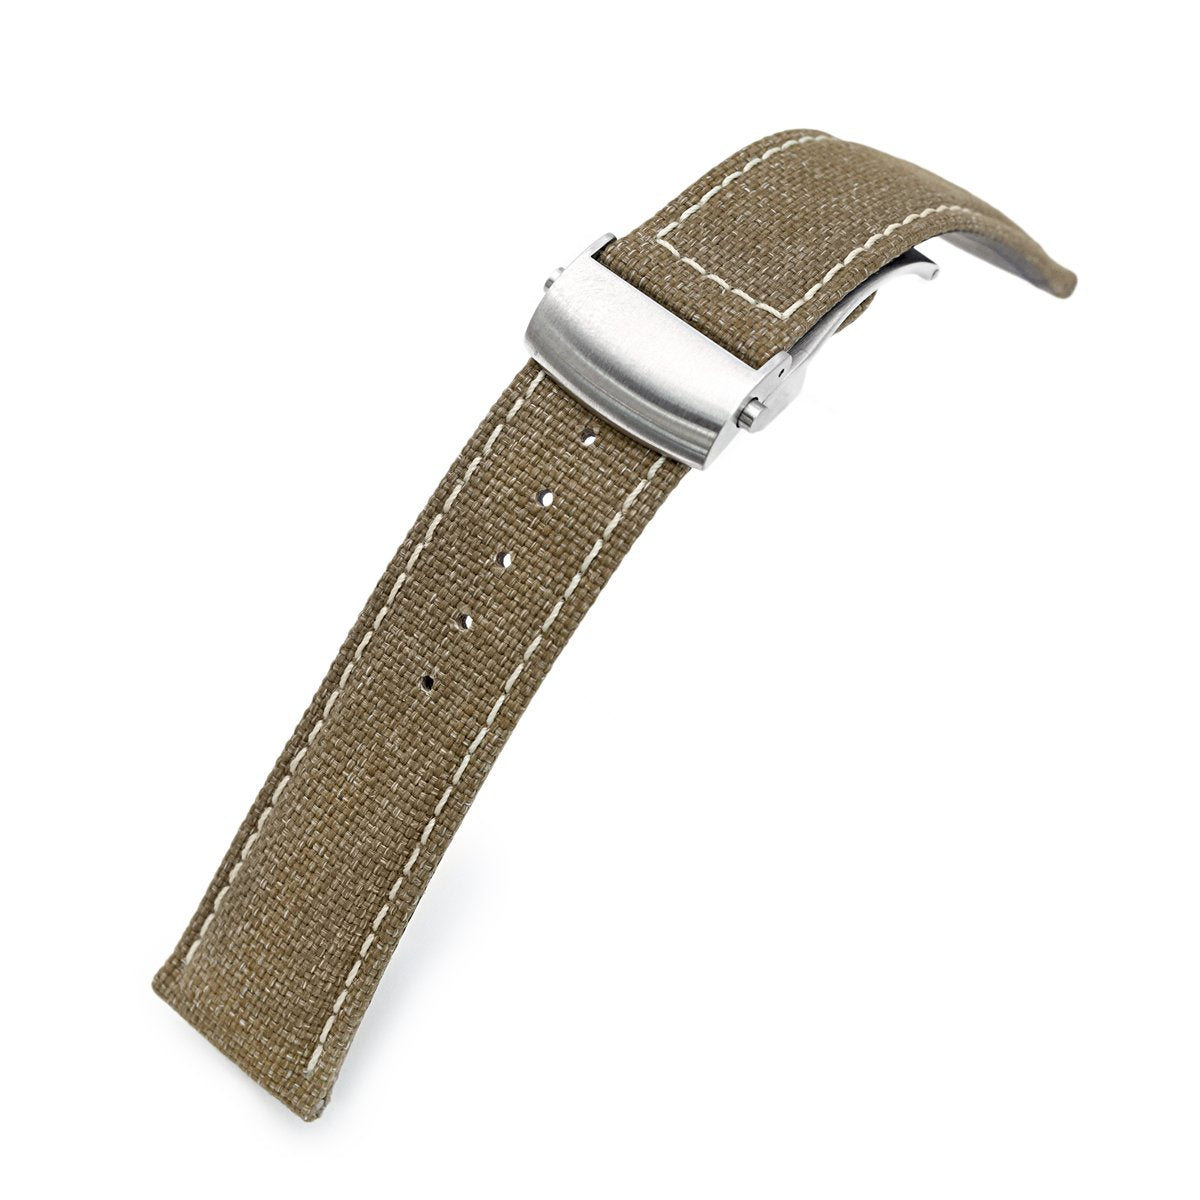 20mm or 22mm Khaki Canvas Watch Band Brushed Roller Deployant Buckle Beige Stitching Strapcode Watch Bands